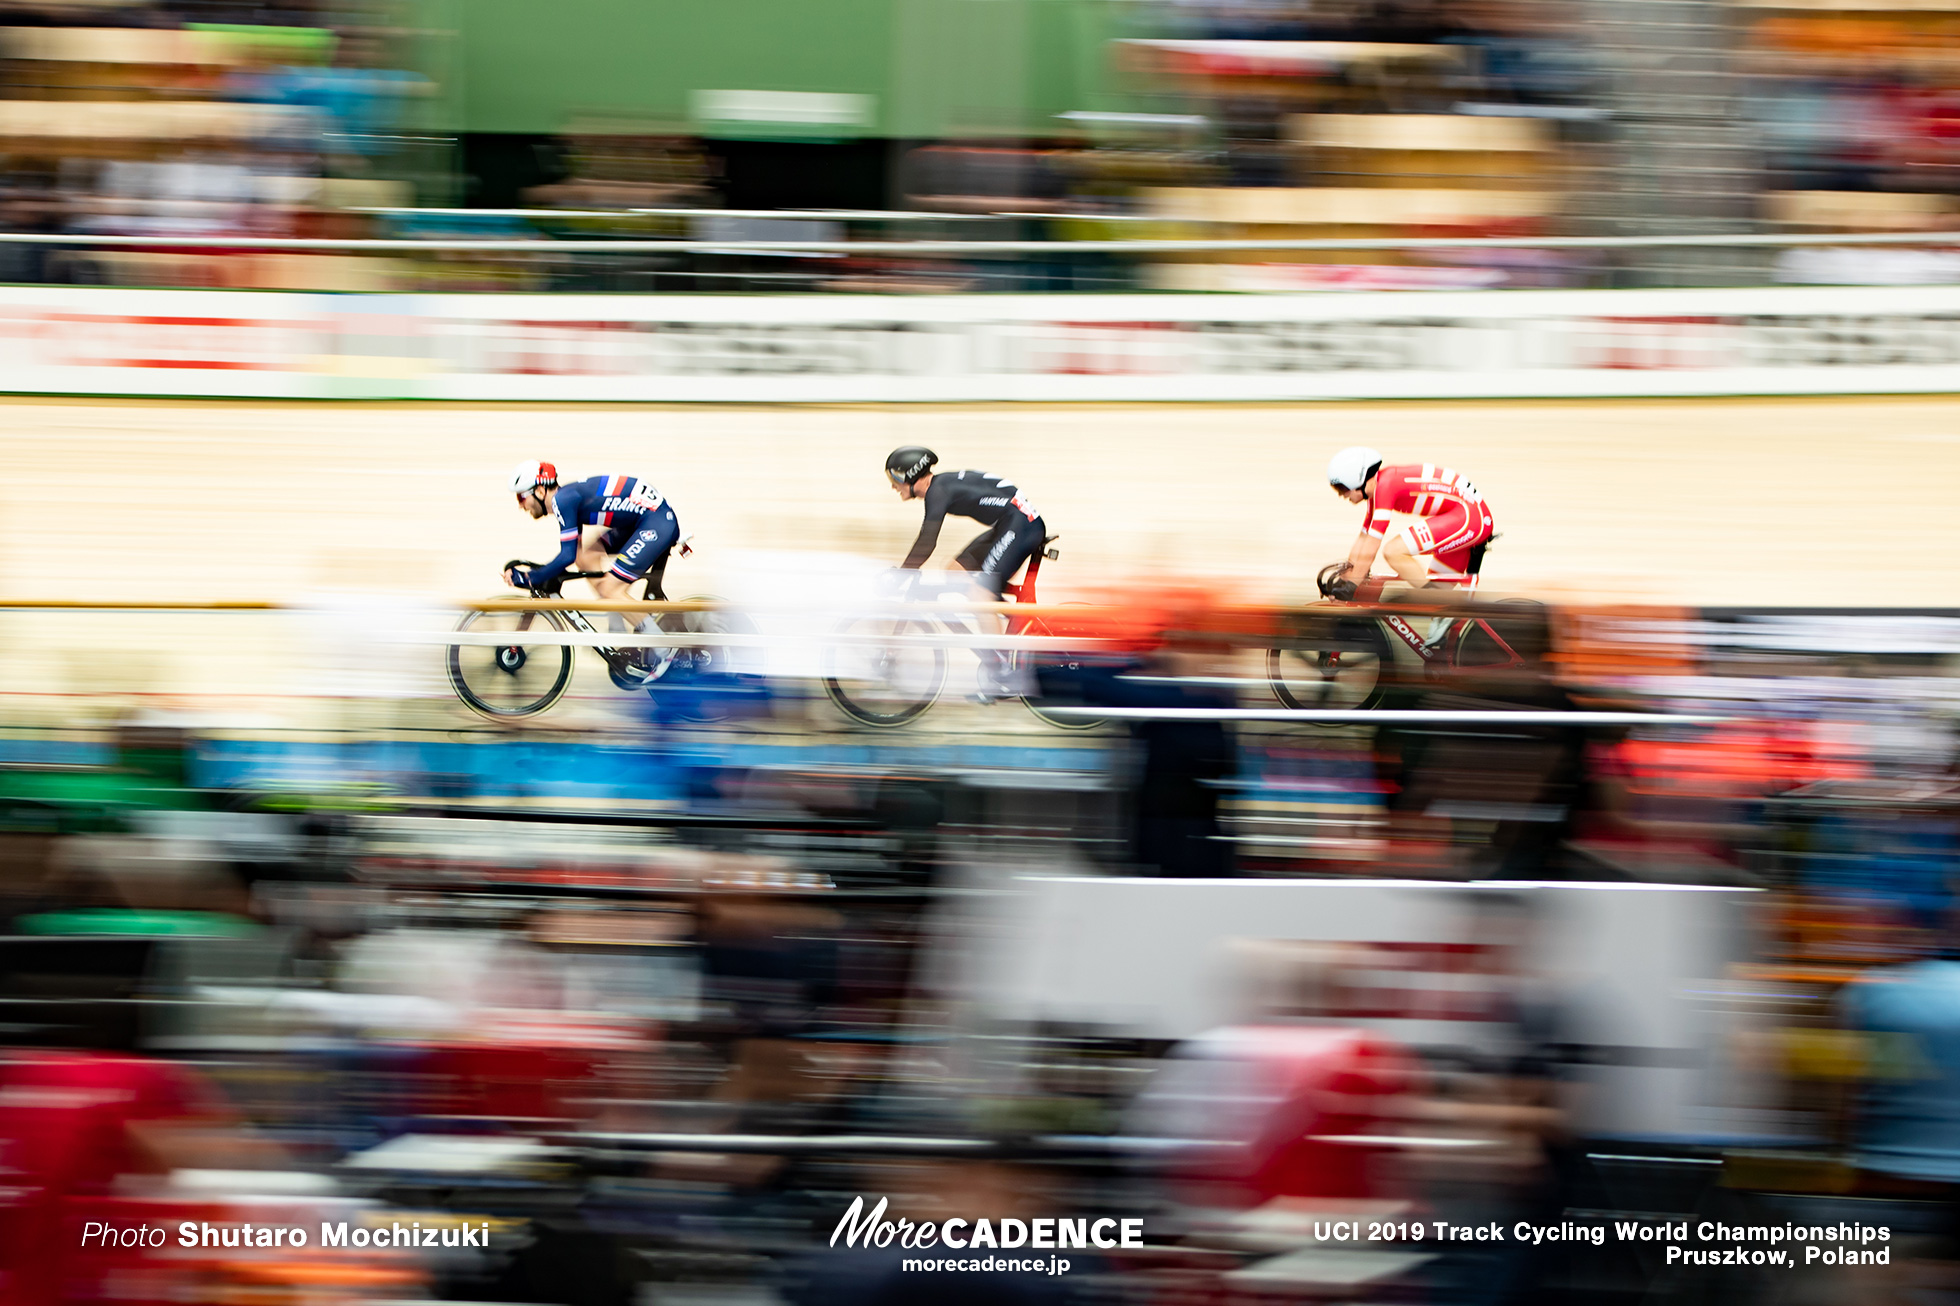 Men's Omnium Point Race / 2019 Track Cycling World Championships Pruszków, Poland